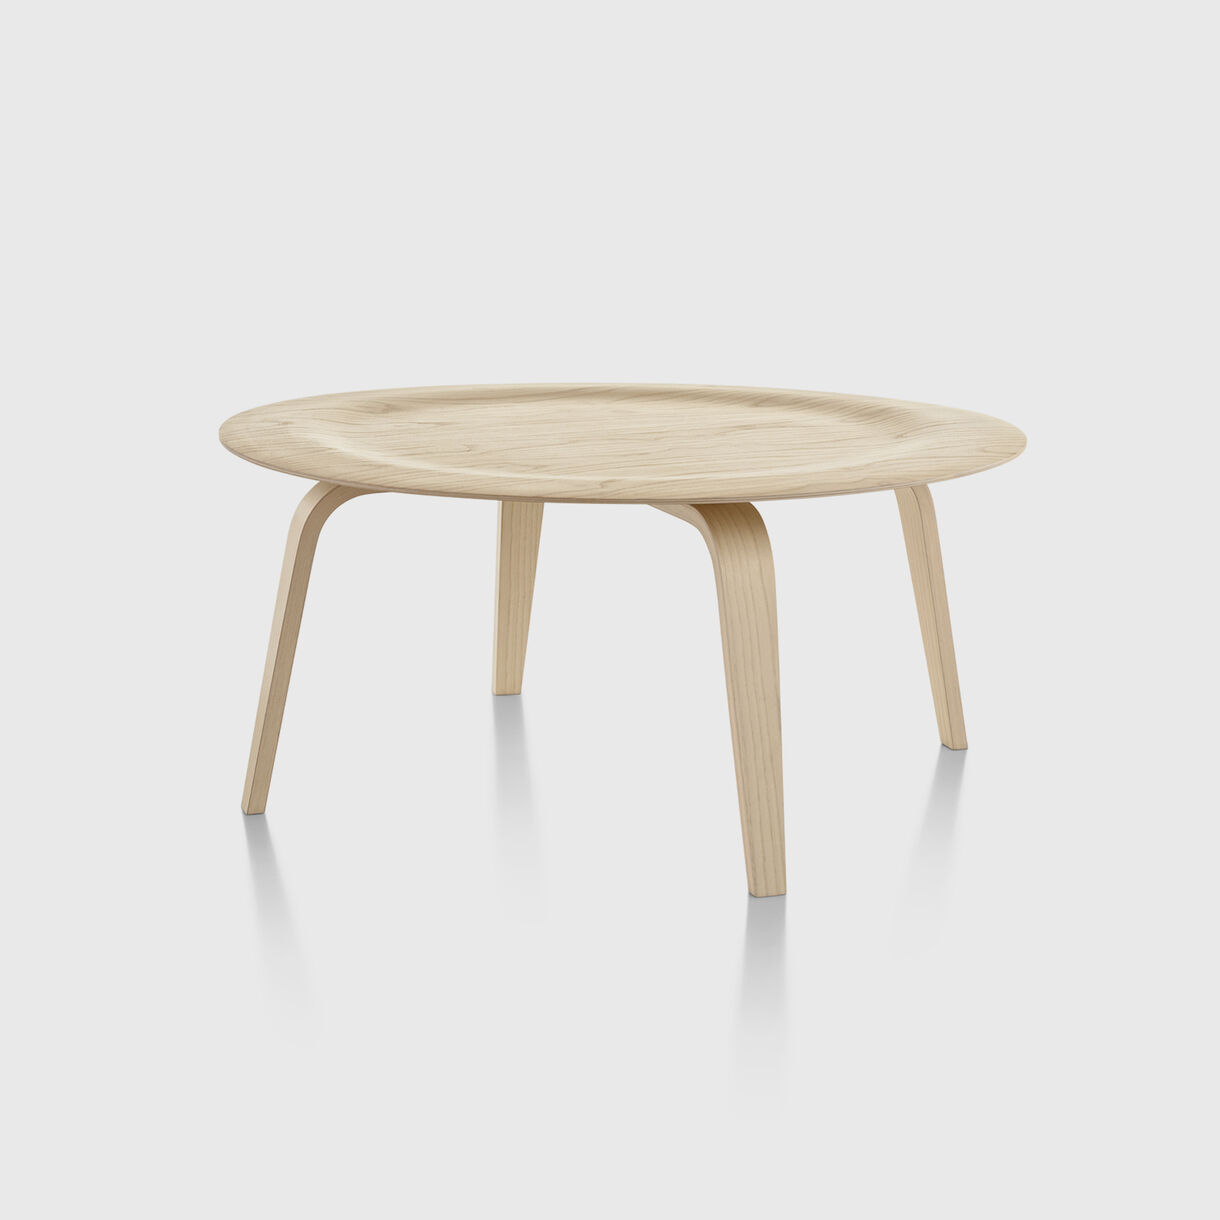 Eames Moulded Plywood Coffee Table